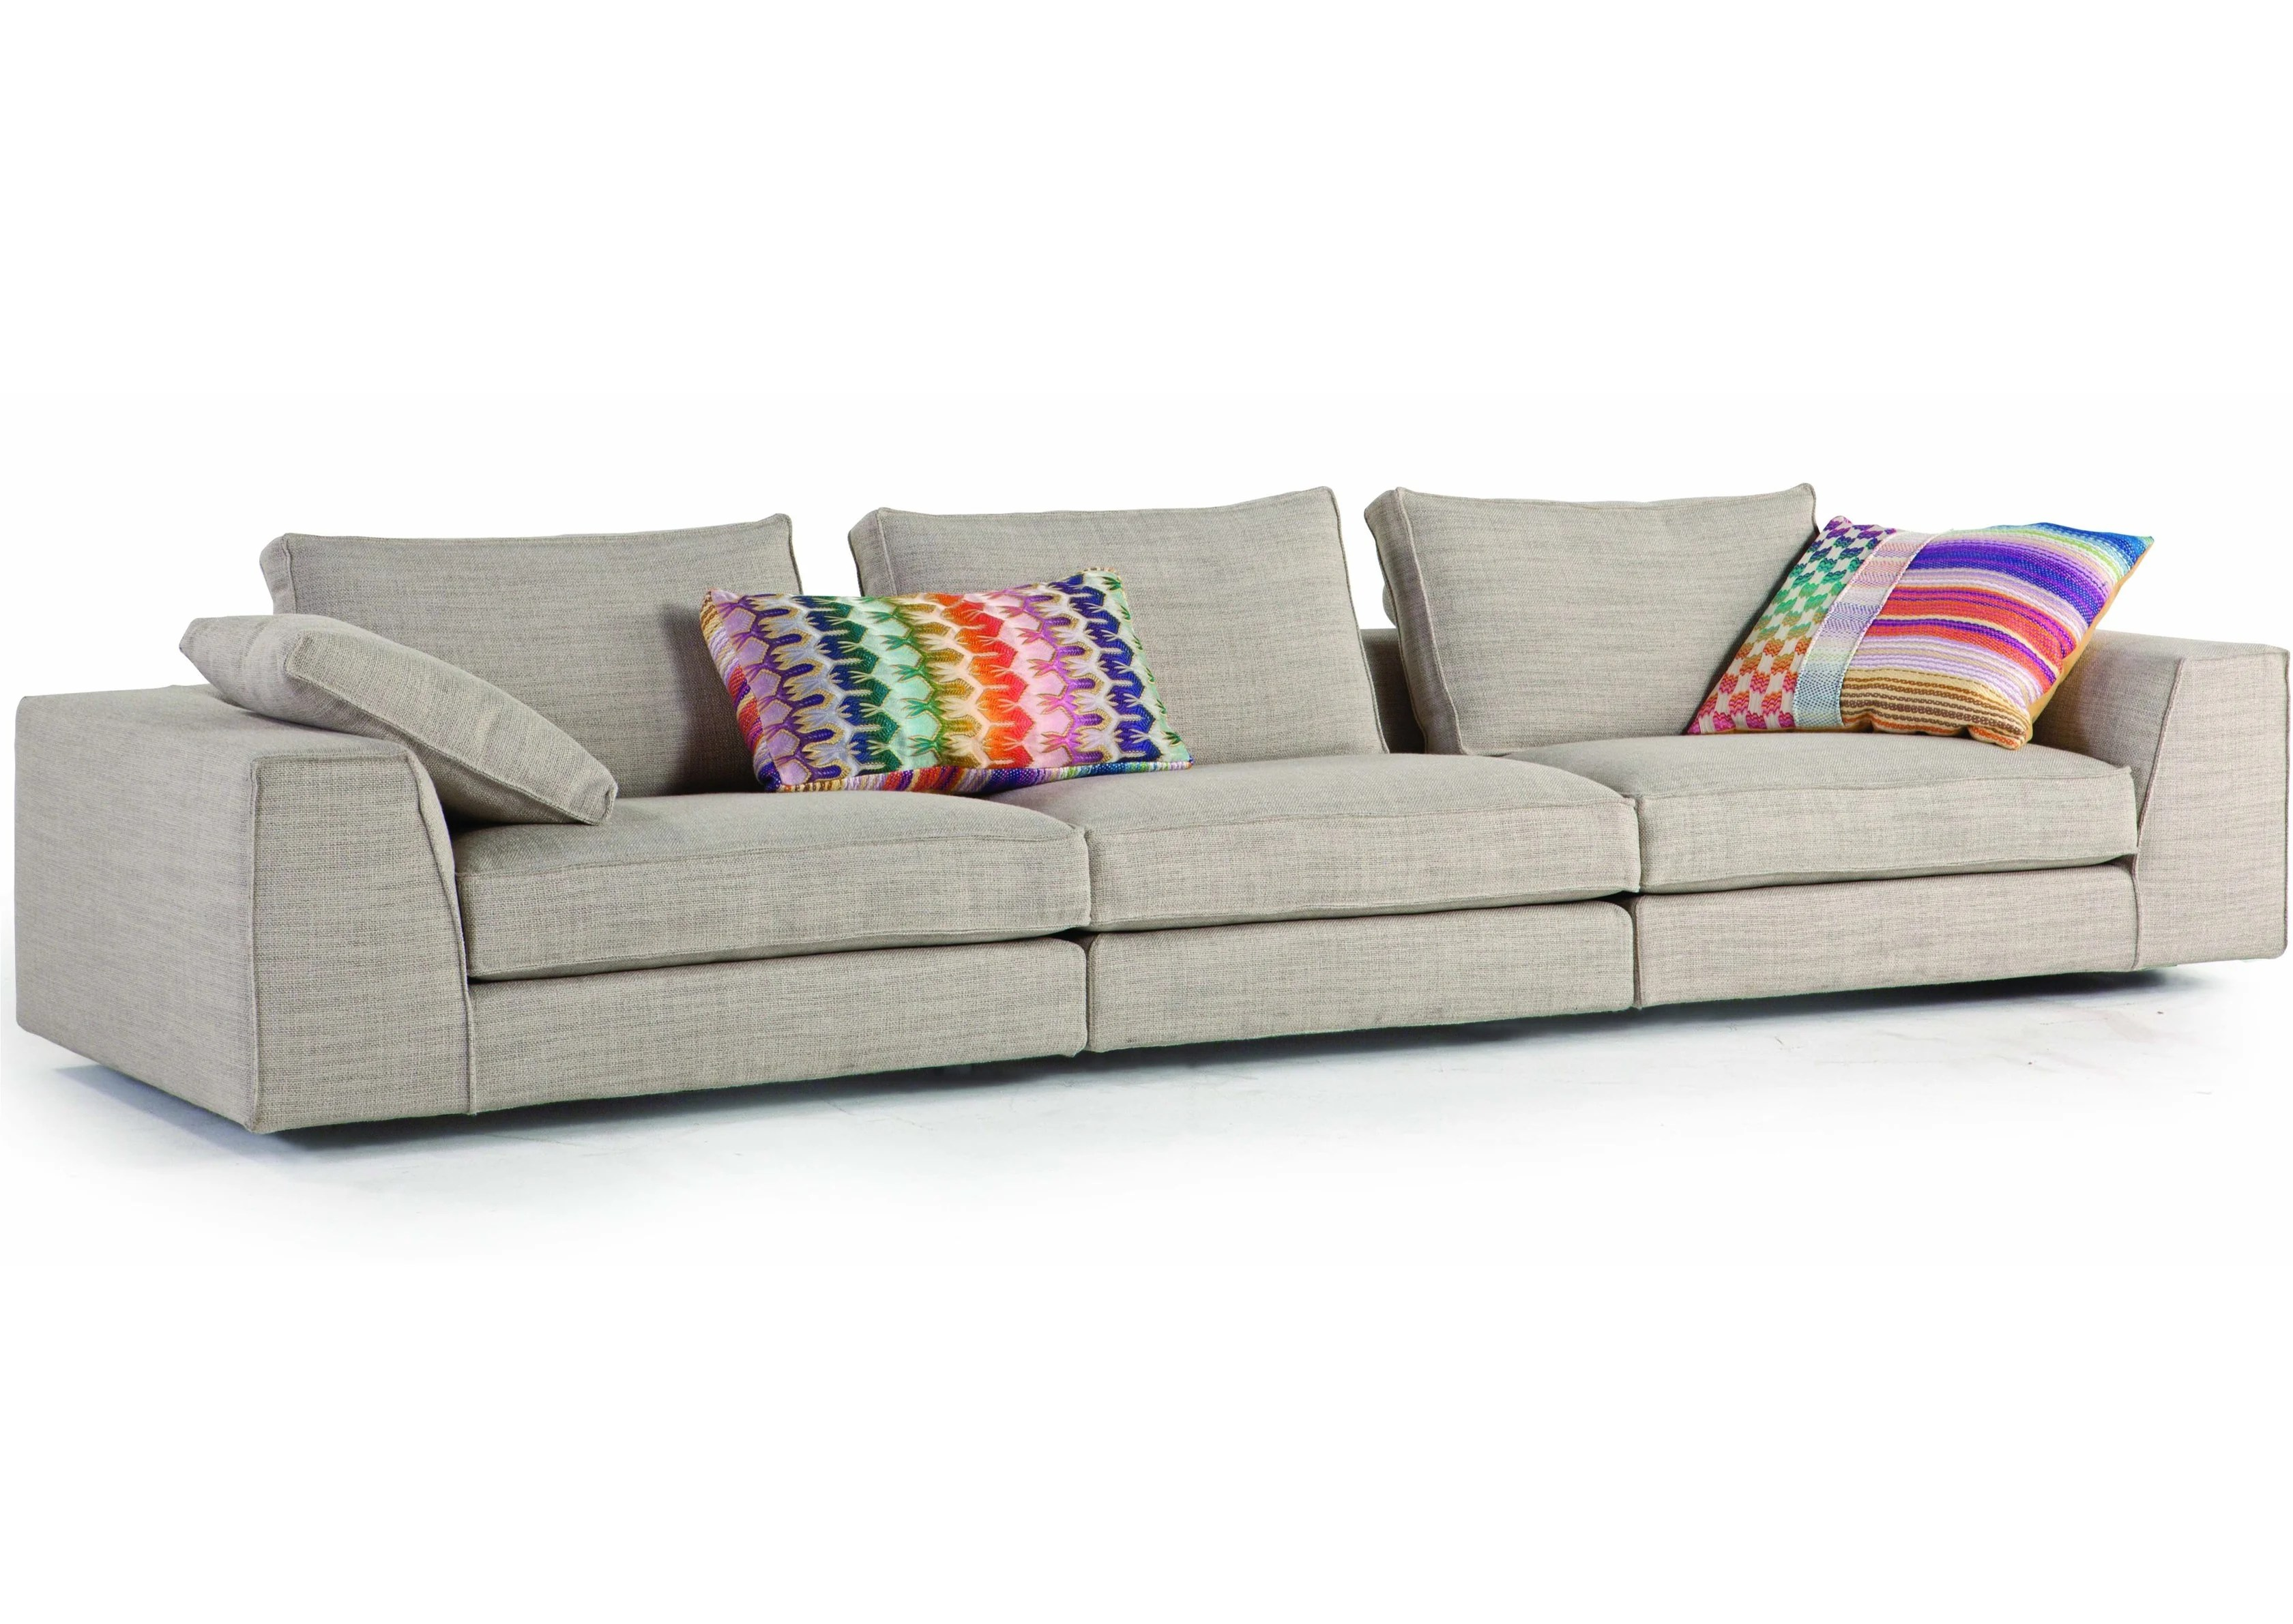 bubble sofa roche bobois cost corner and cuddle chair set prices transformable satellite by